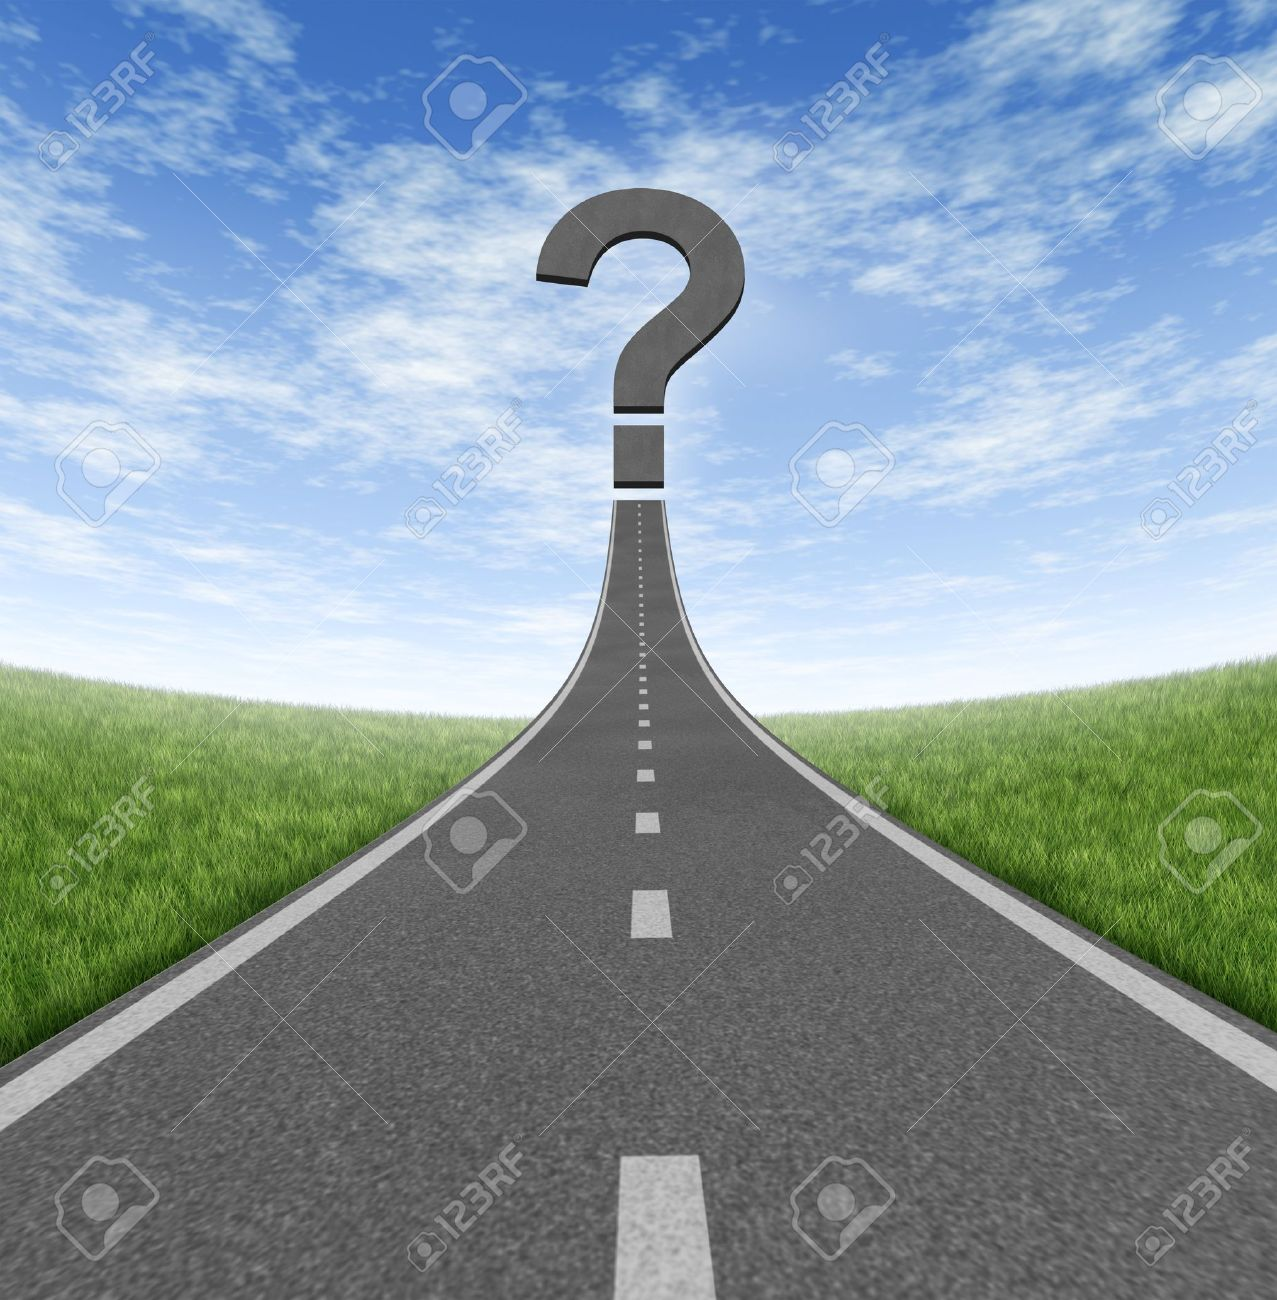 road to change and business career path as a rising highway road to change and business career path as a rising highway a question mark on